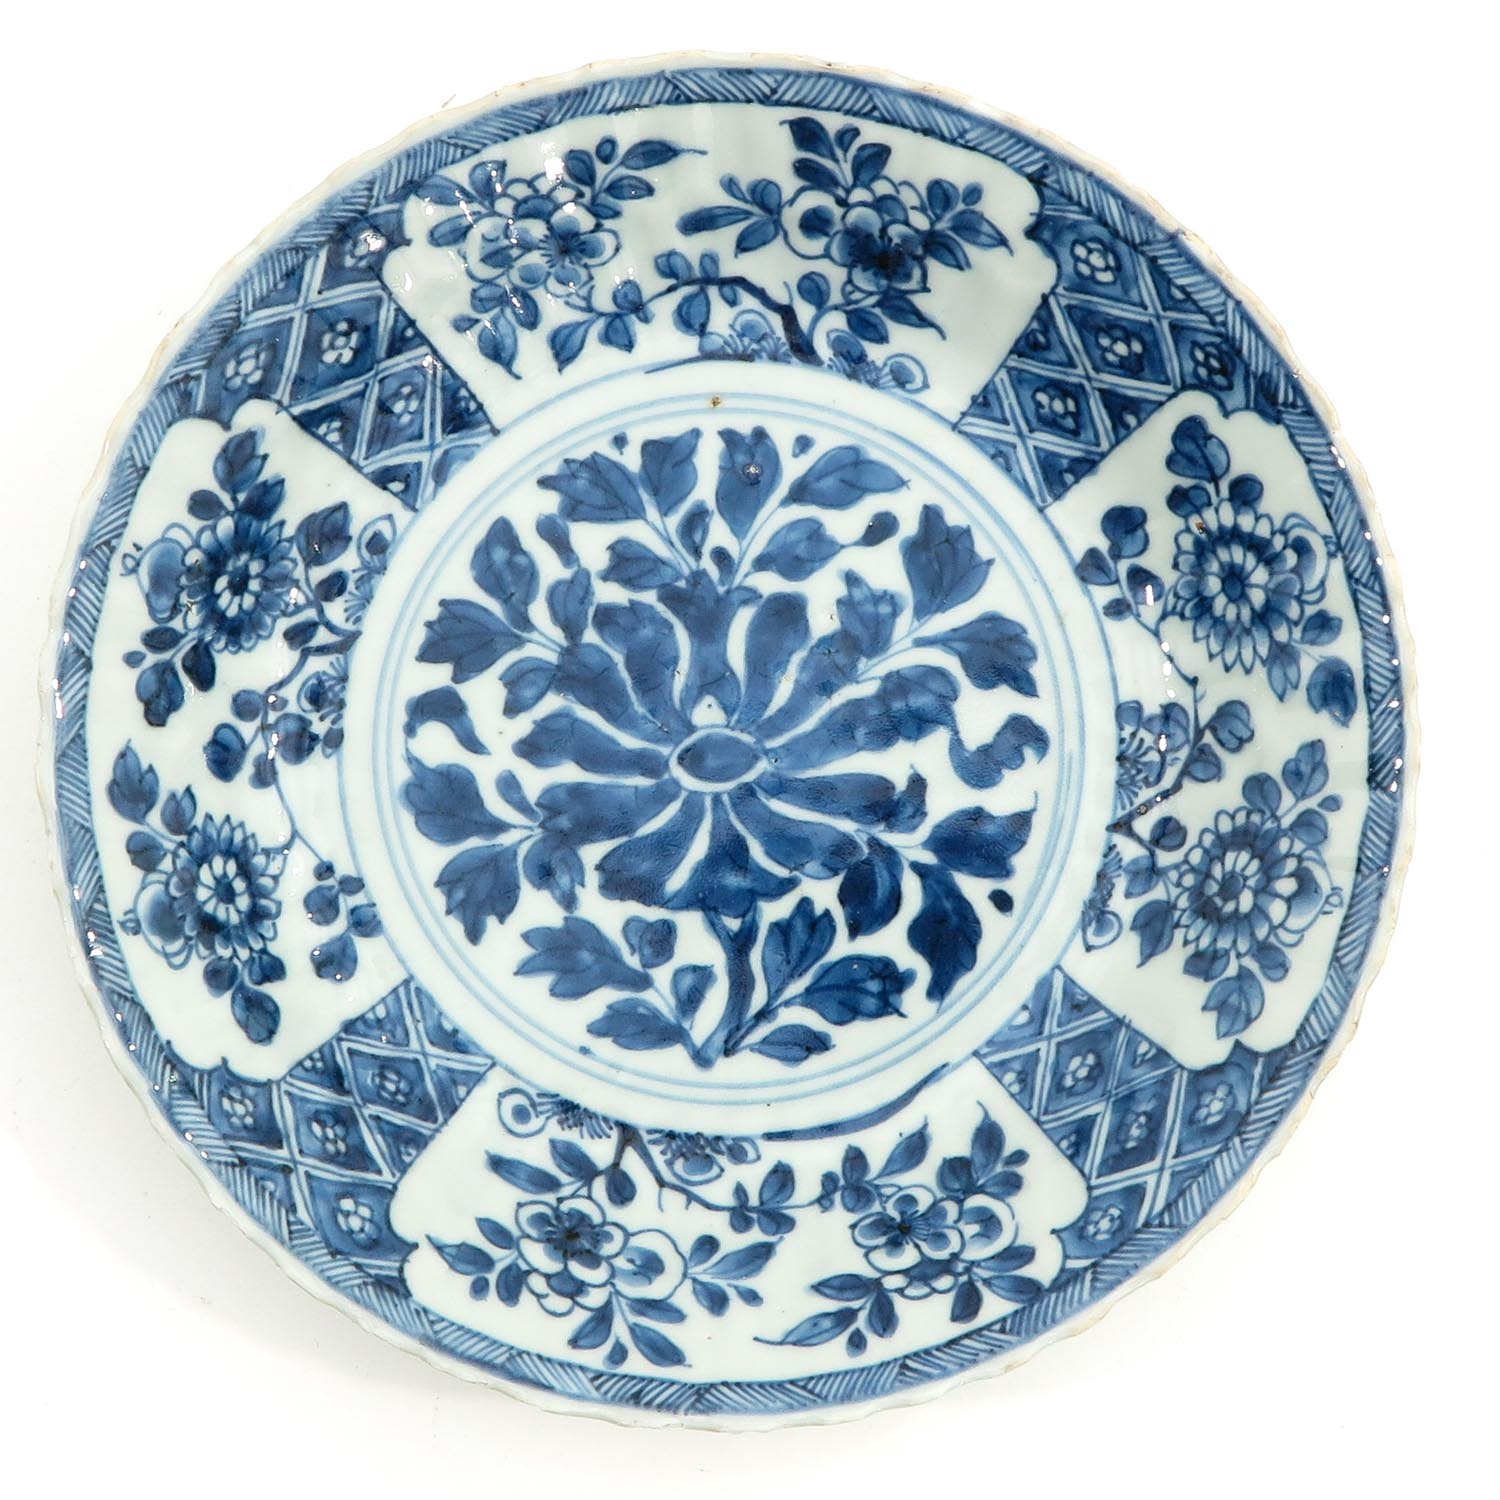 A Lot of 2 Blue and White Plates - Image 3 of 10